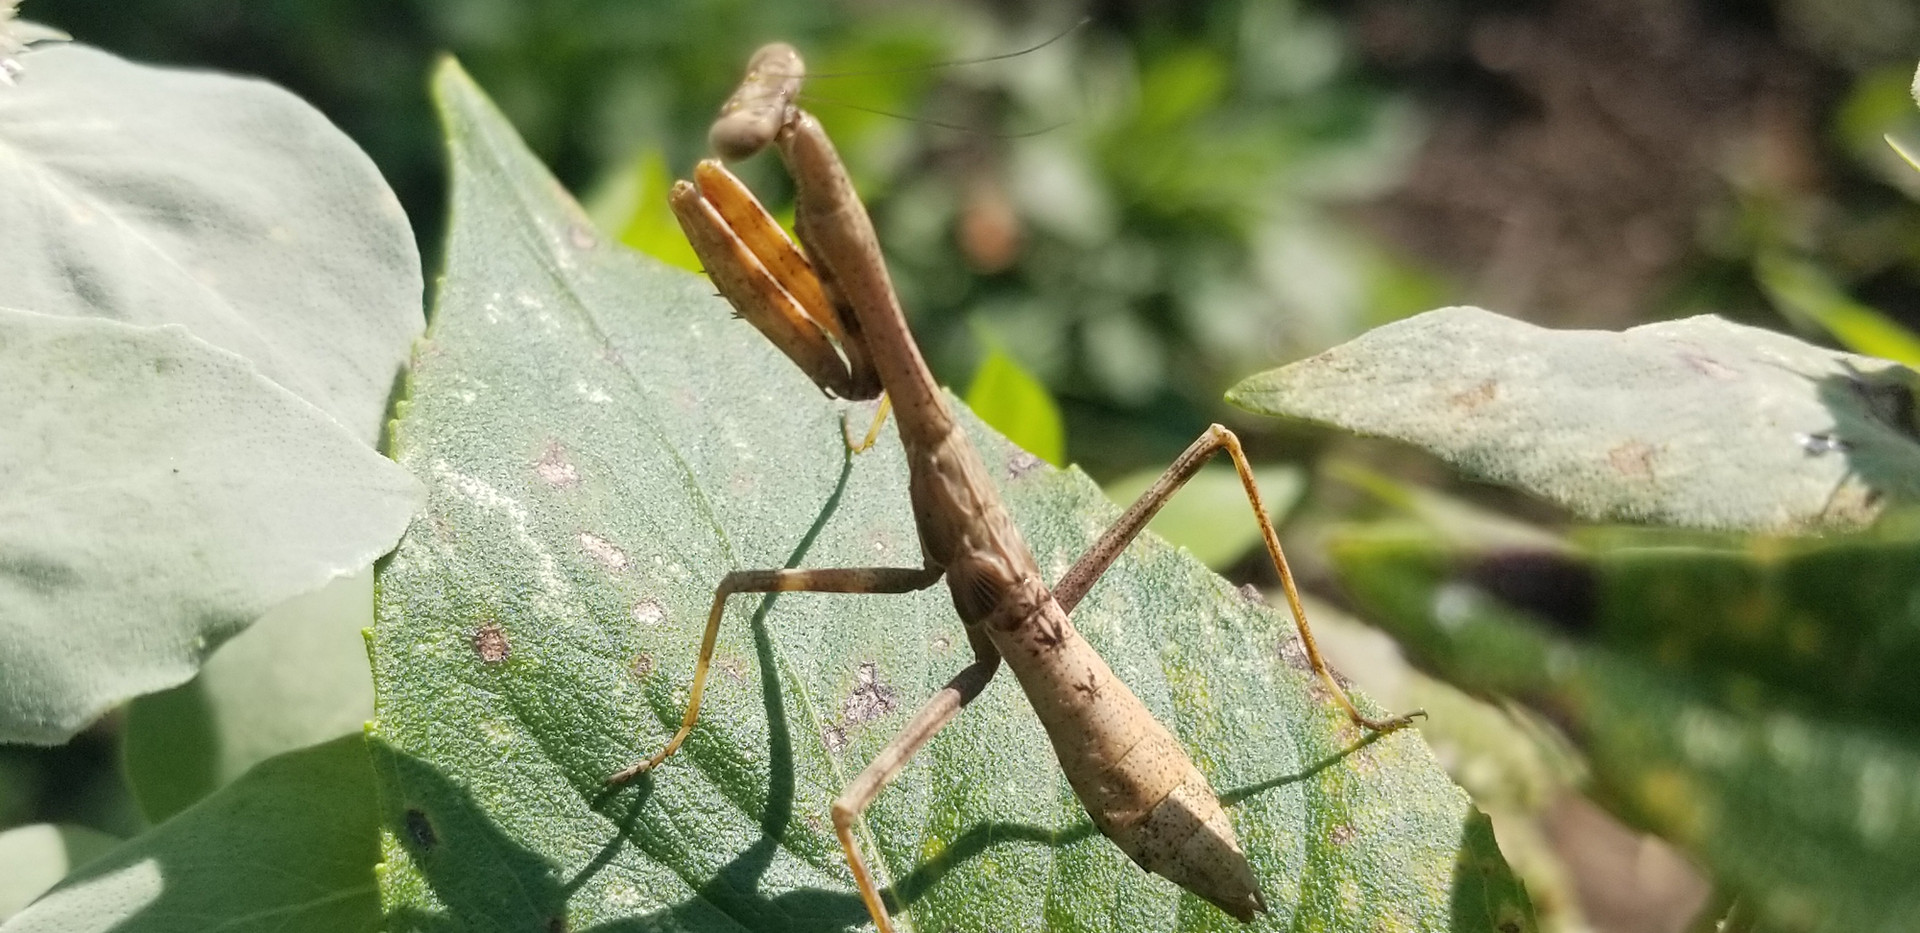 Busy Mantis!